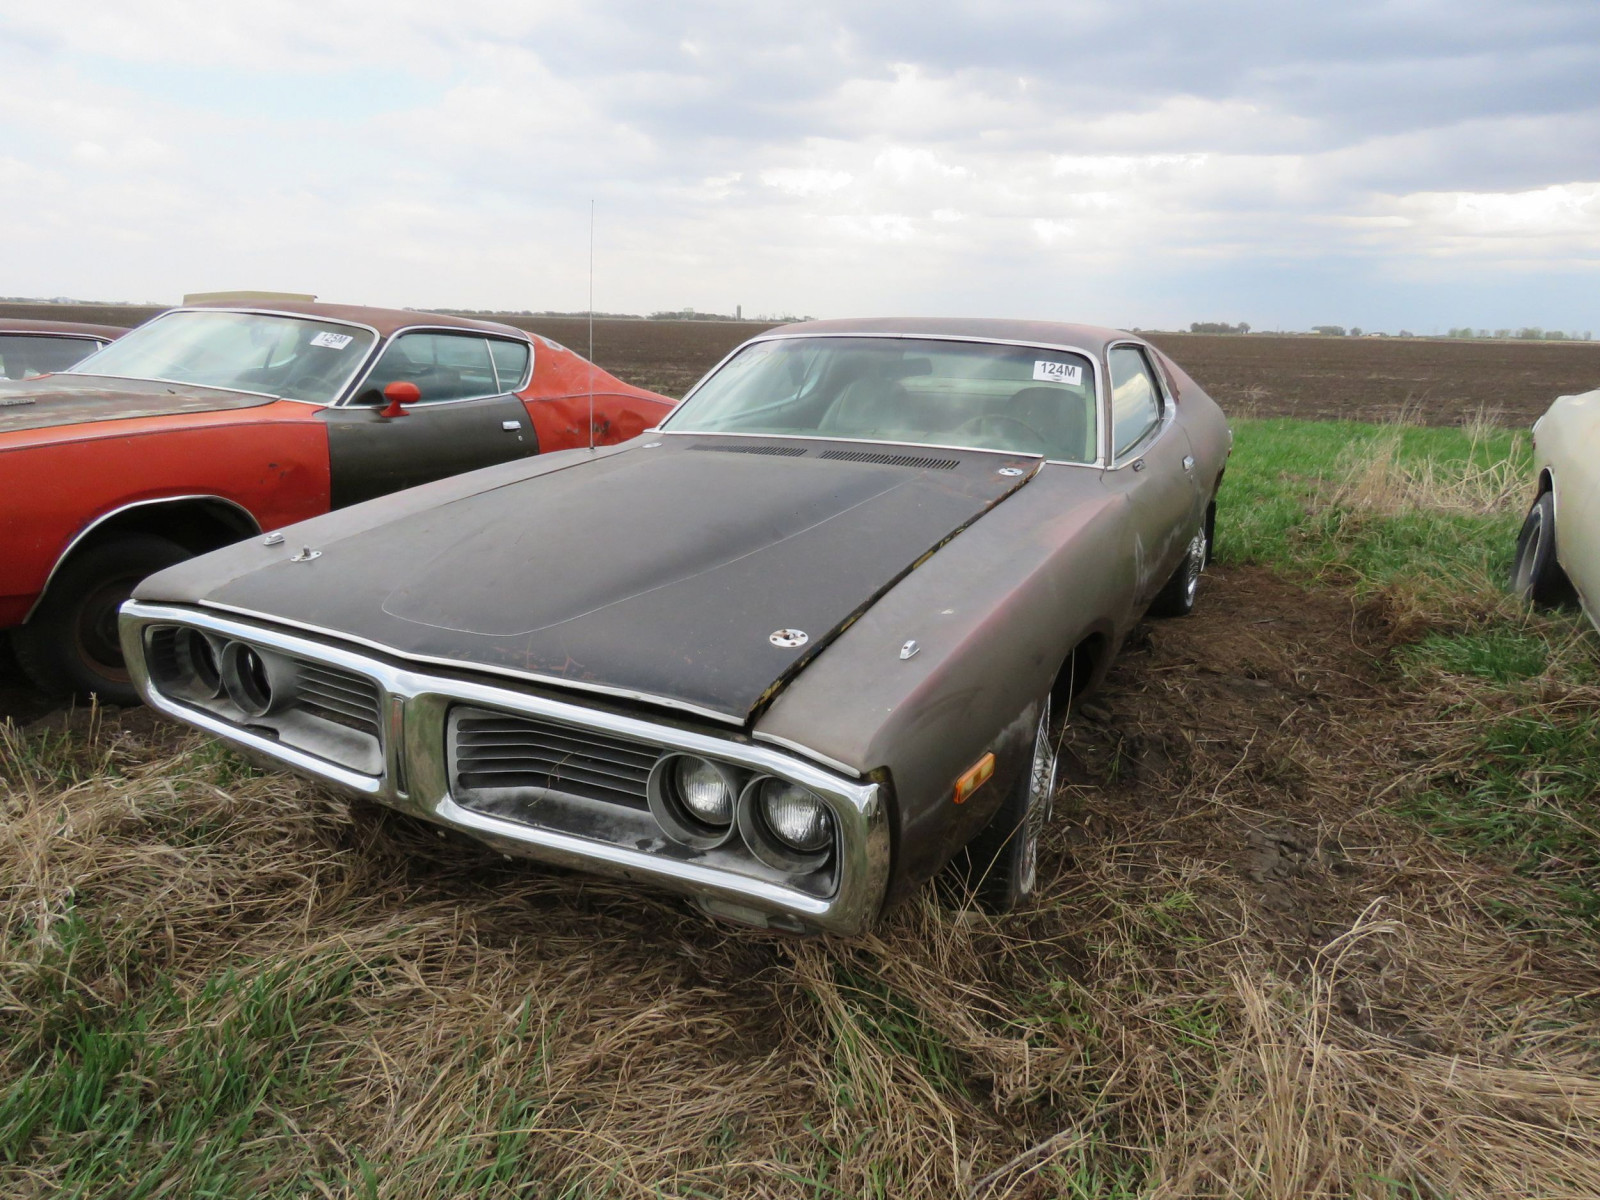 1972 Dodge Charger Coupe - Image 10